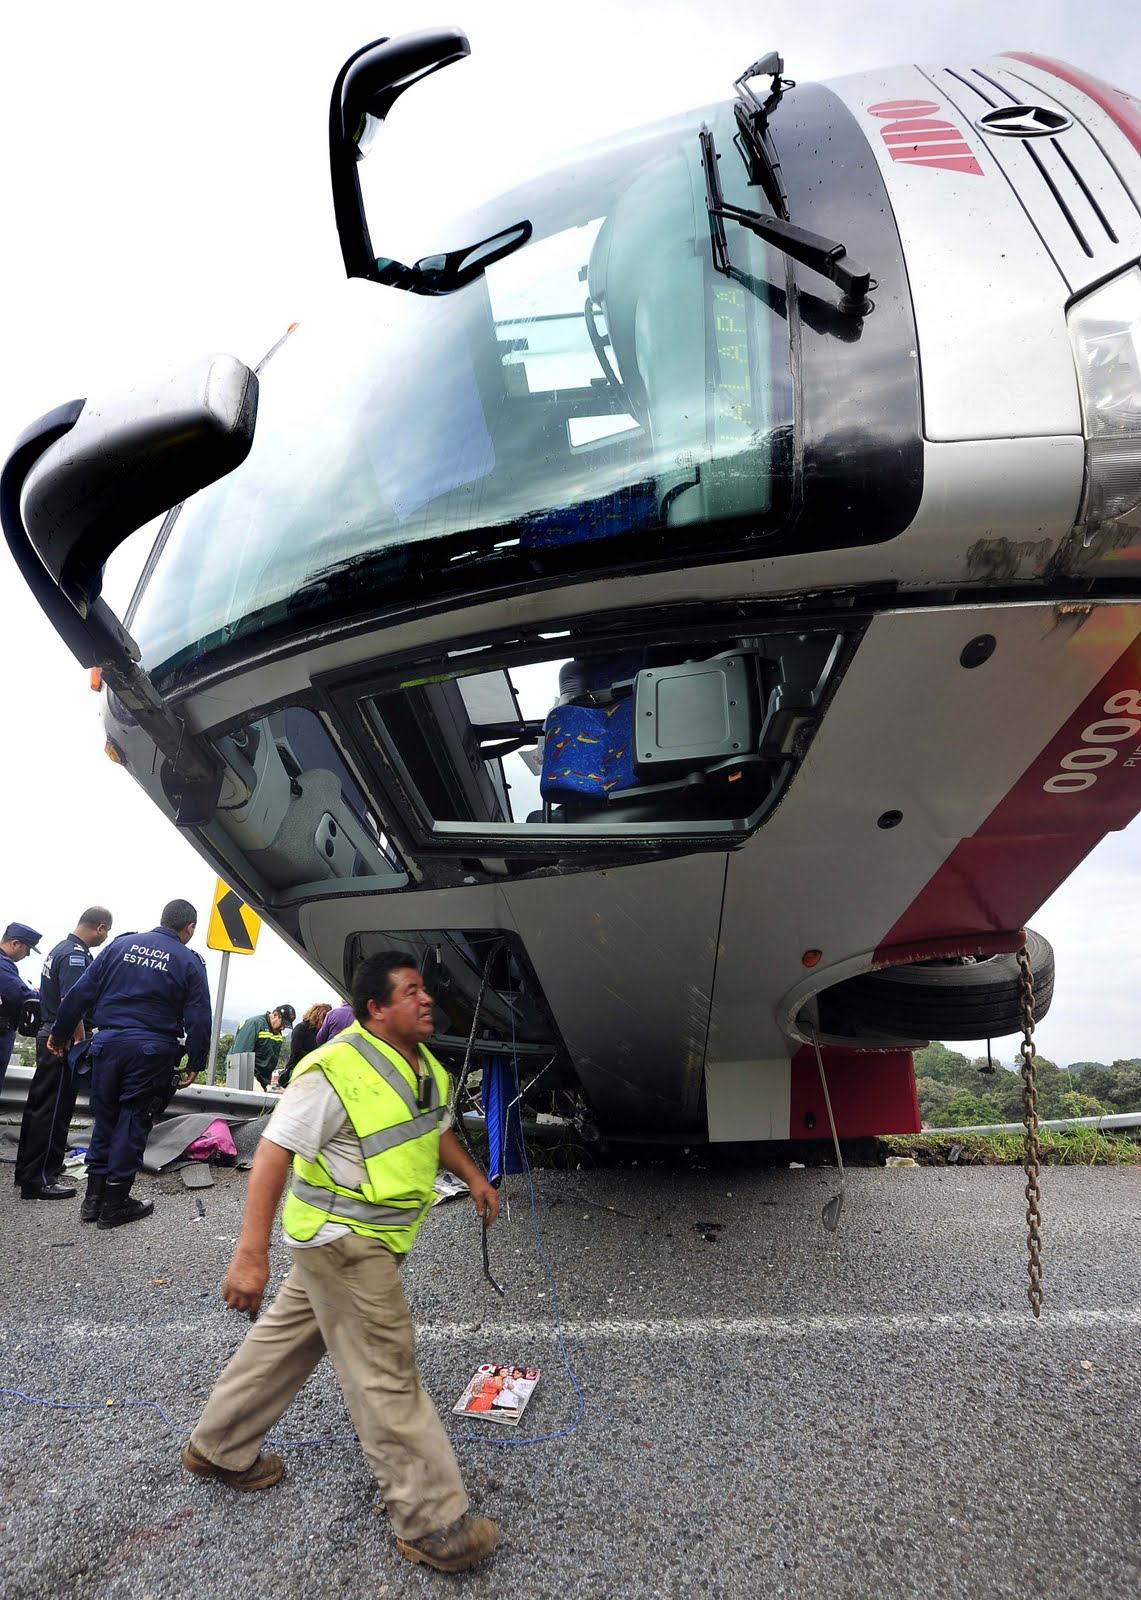 Accidentes De Trailers En Mexico http://suburbiodeimagen.blogspot.com/2011/09/accidente-en-la-carretera-veracruz.html